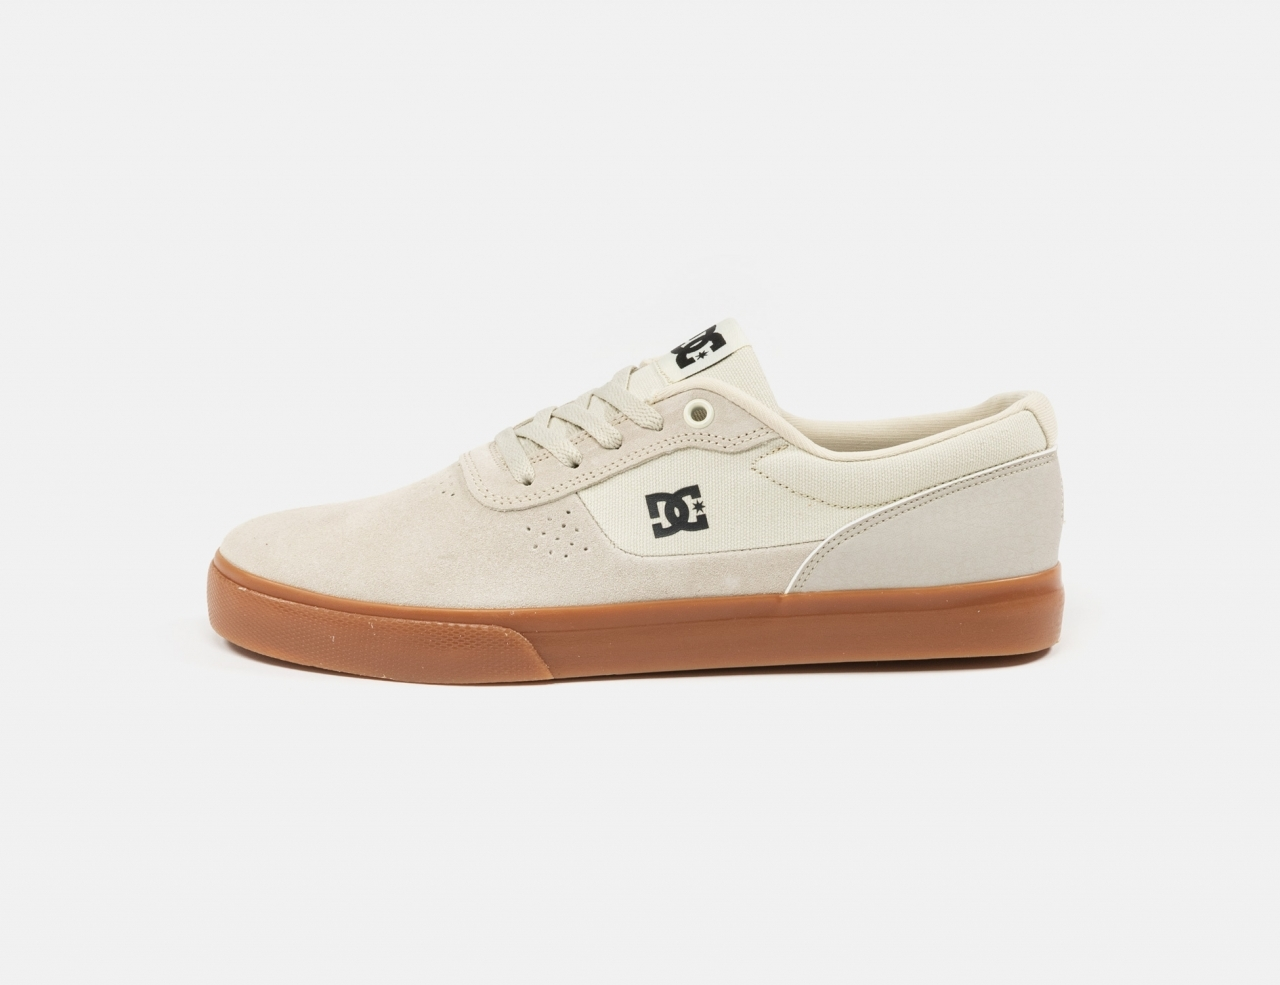 DC Shoes Switch Sneaker - White / Gum